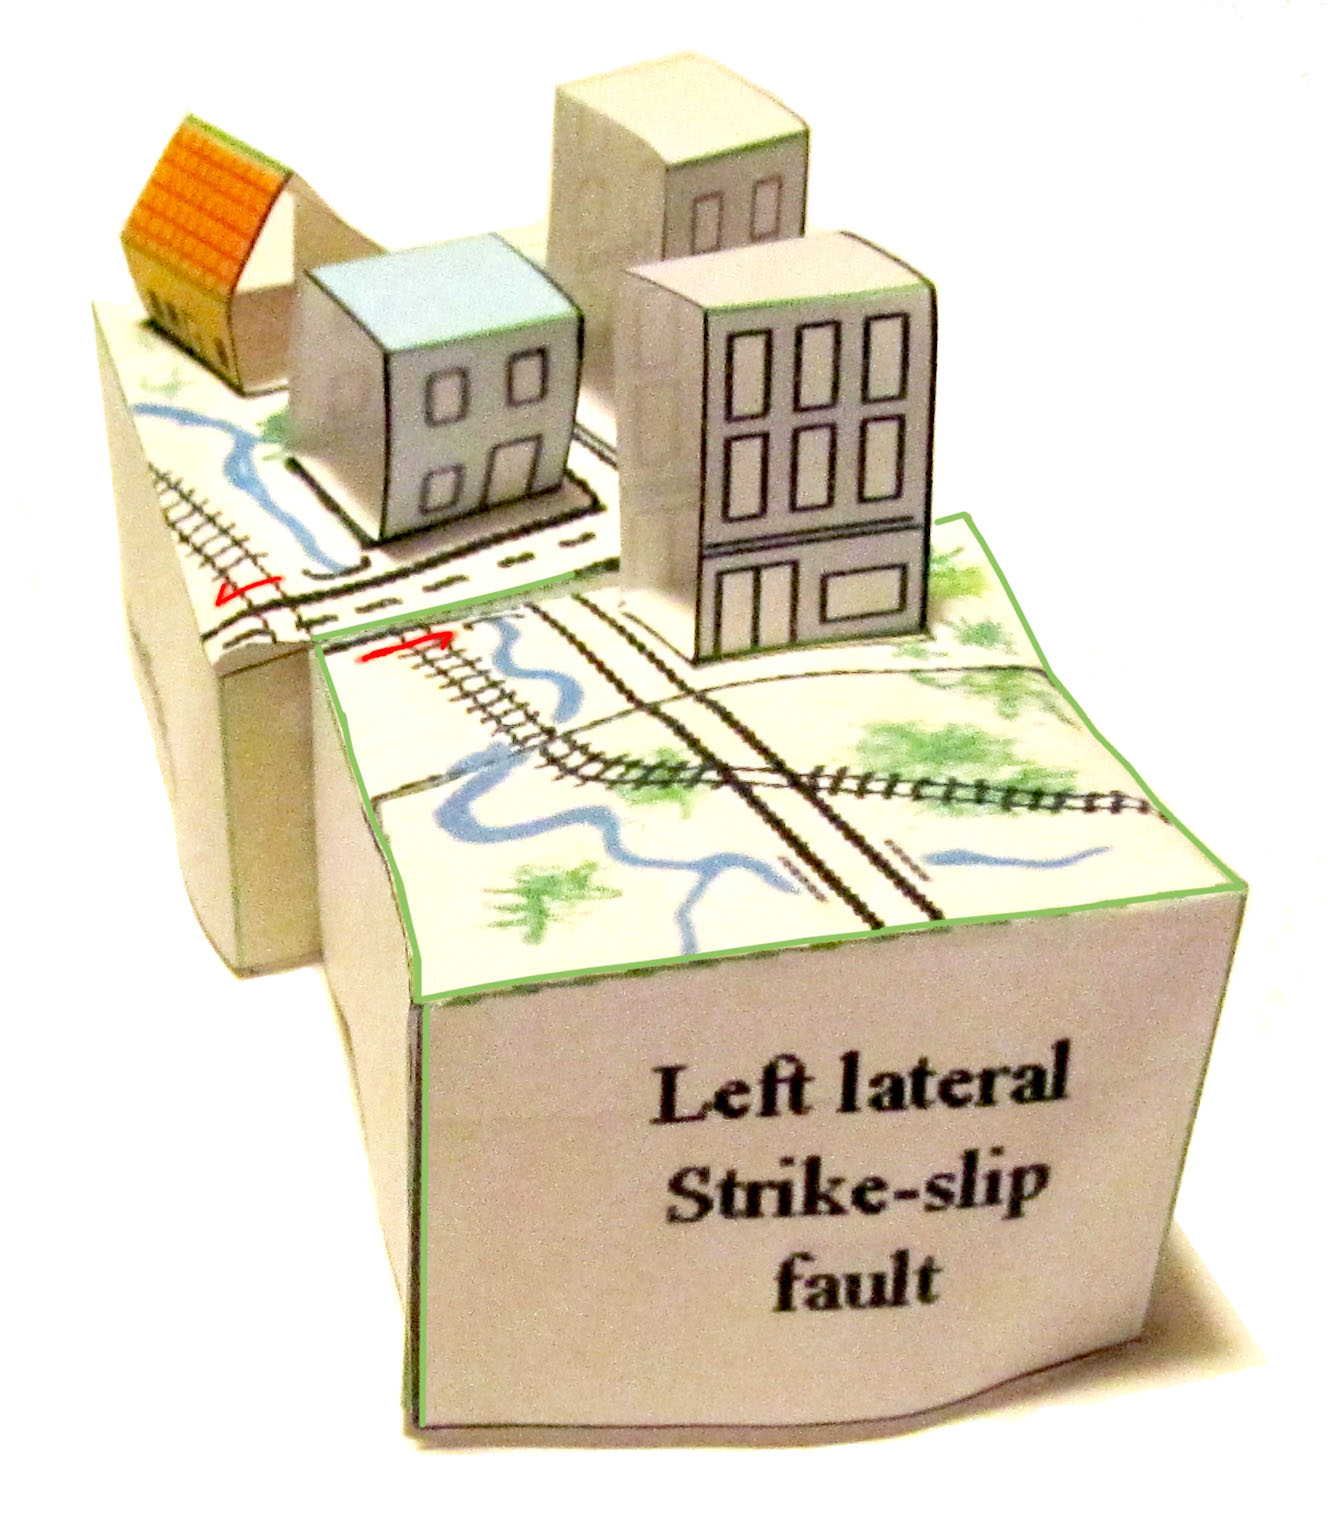 picture of left lateral fault model